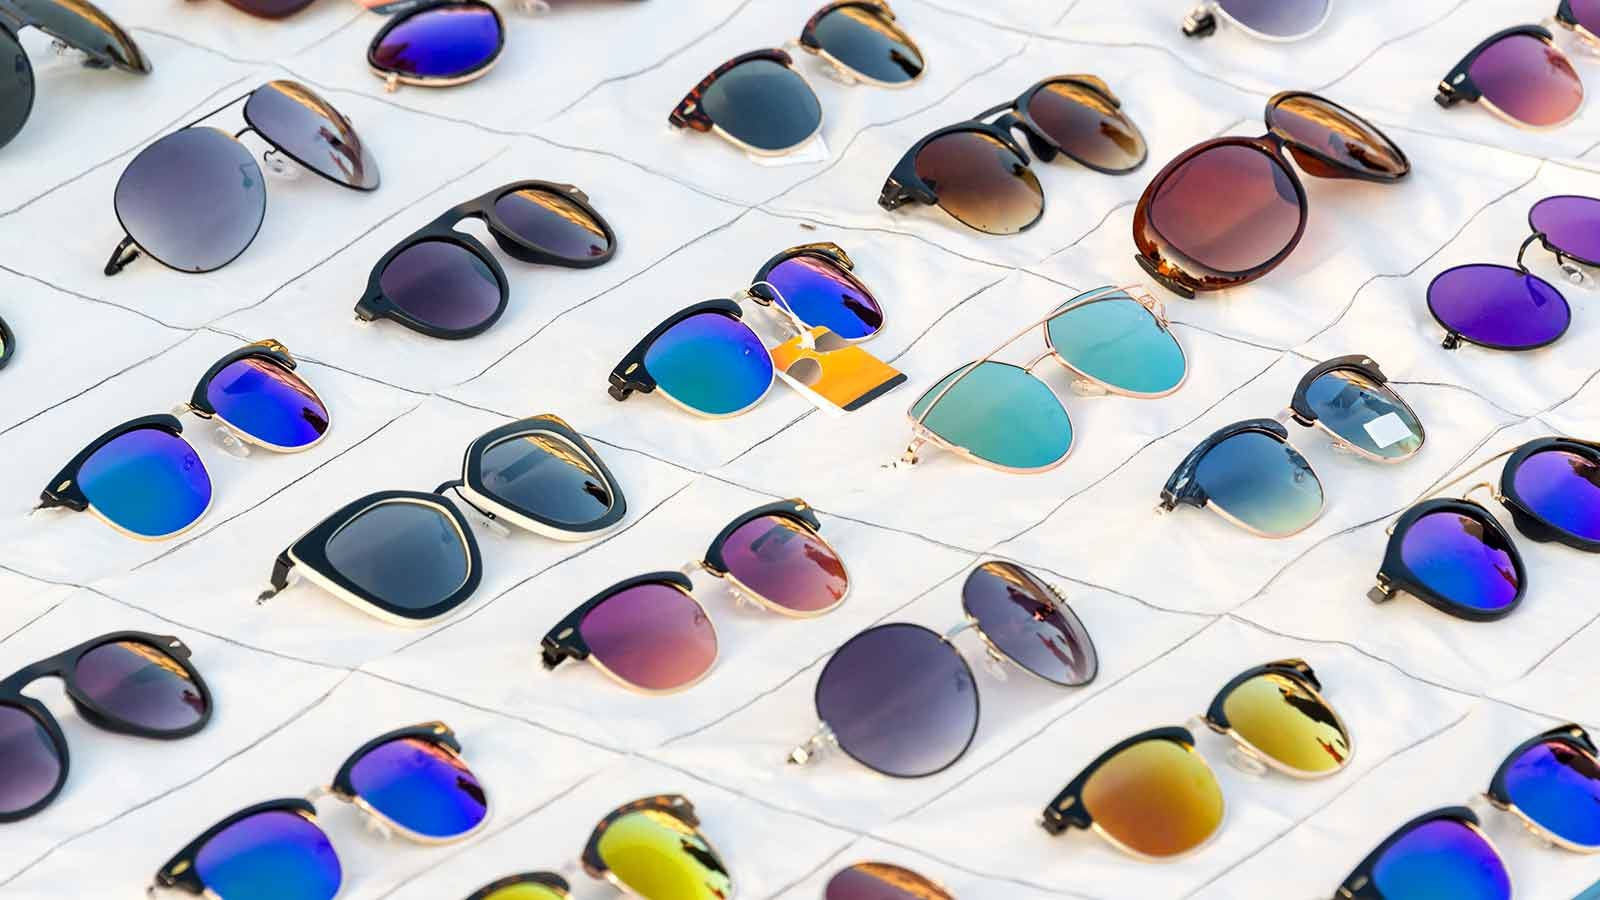 Dozens of sunglasses laid out on a store table